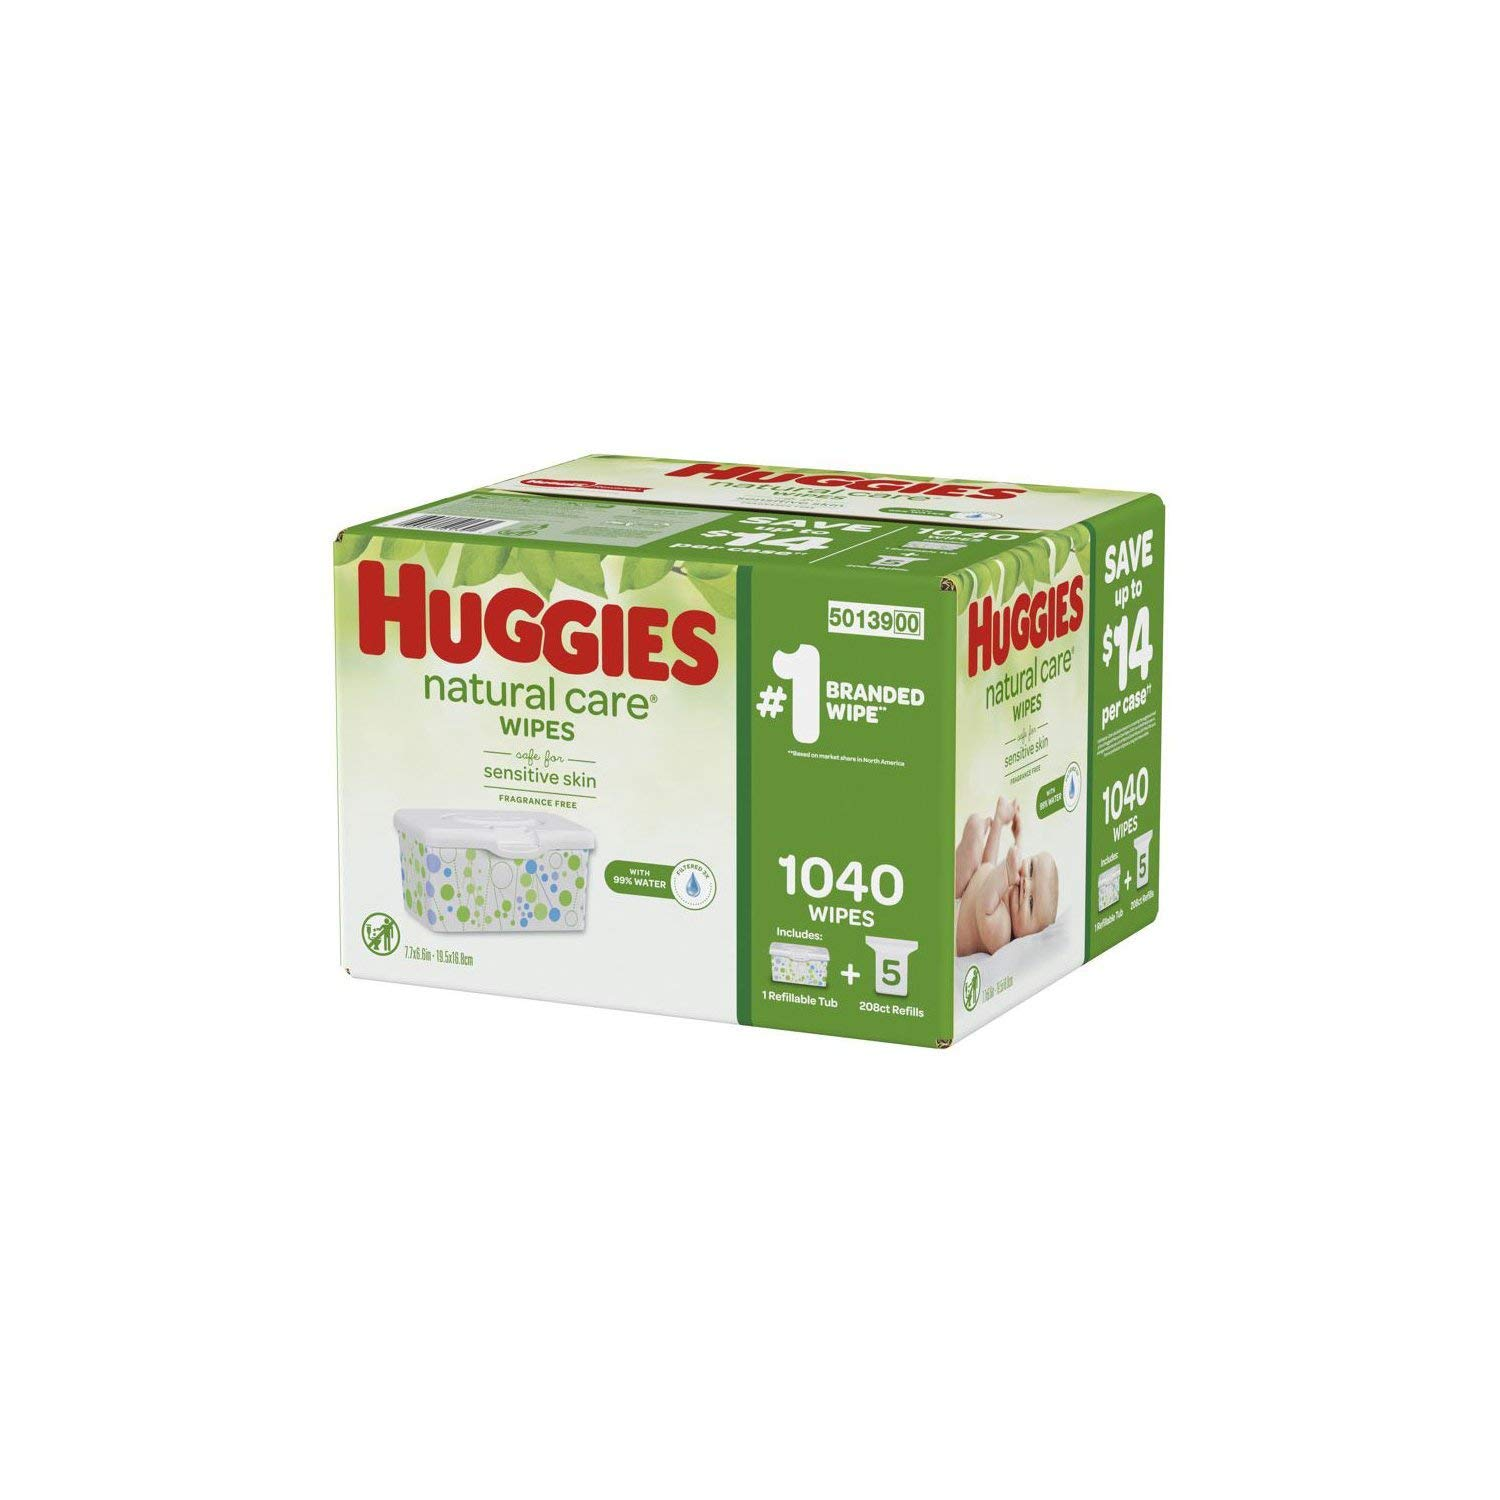 Huggies Natural Care Baby Wipe Refill, Fragrance Free (1,040 ct.) by HUGGIES